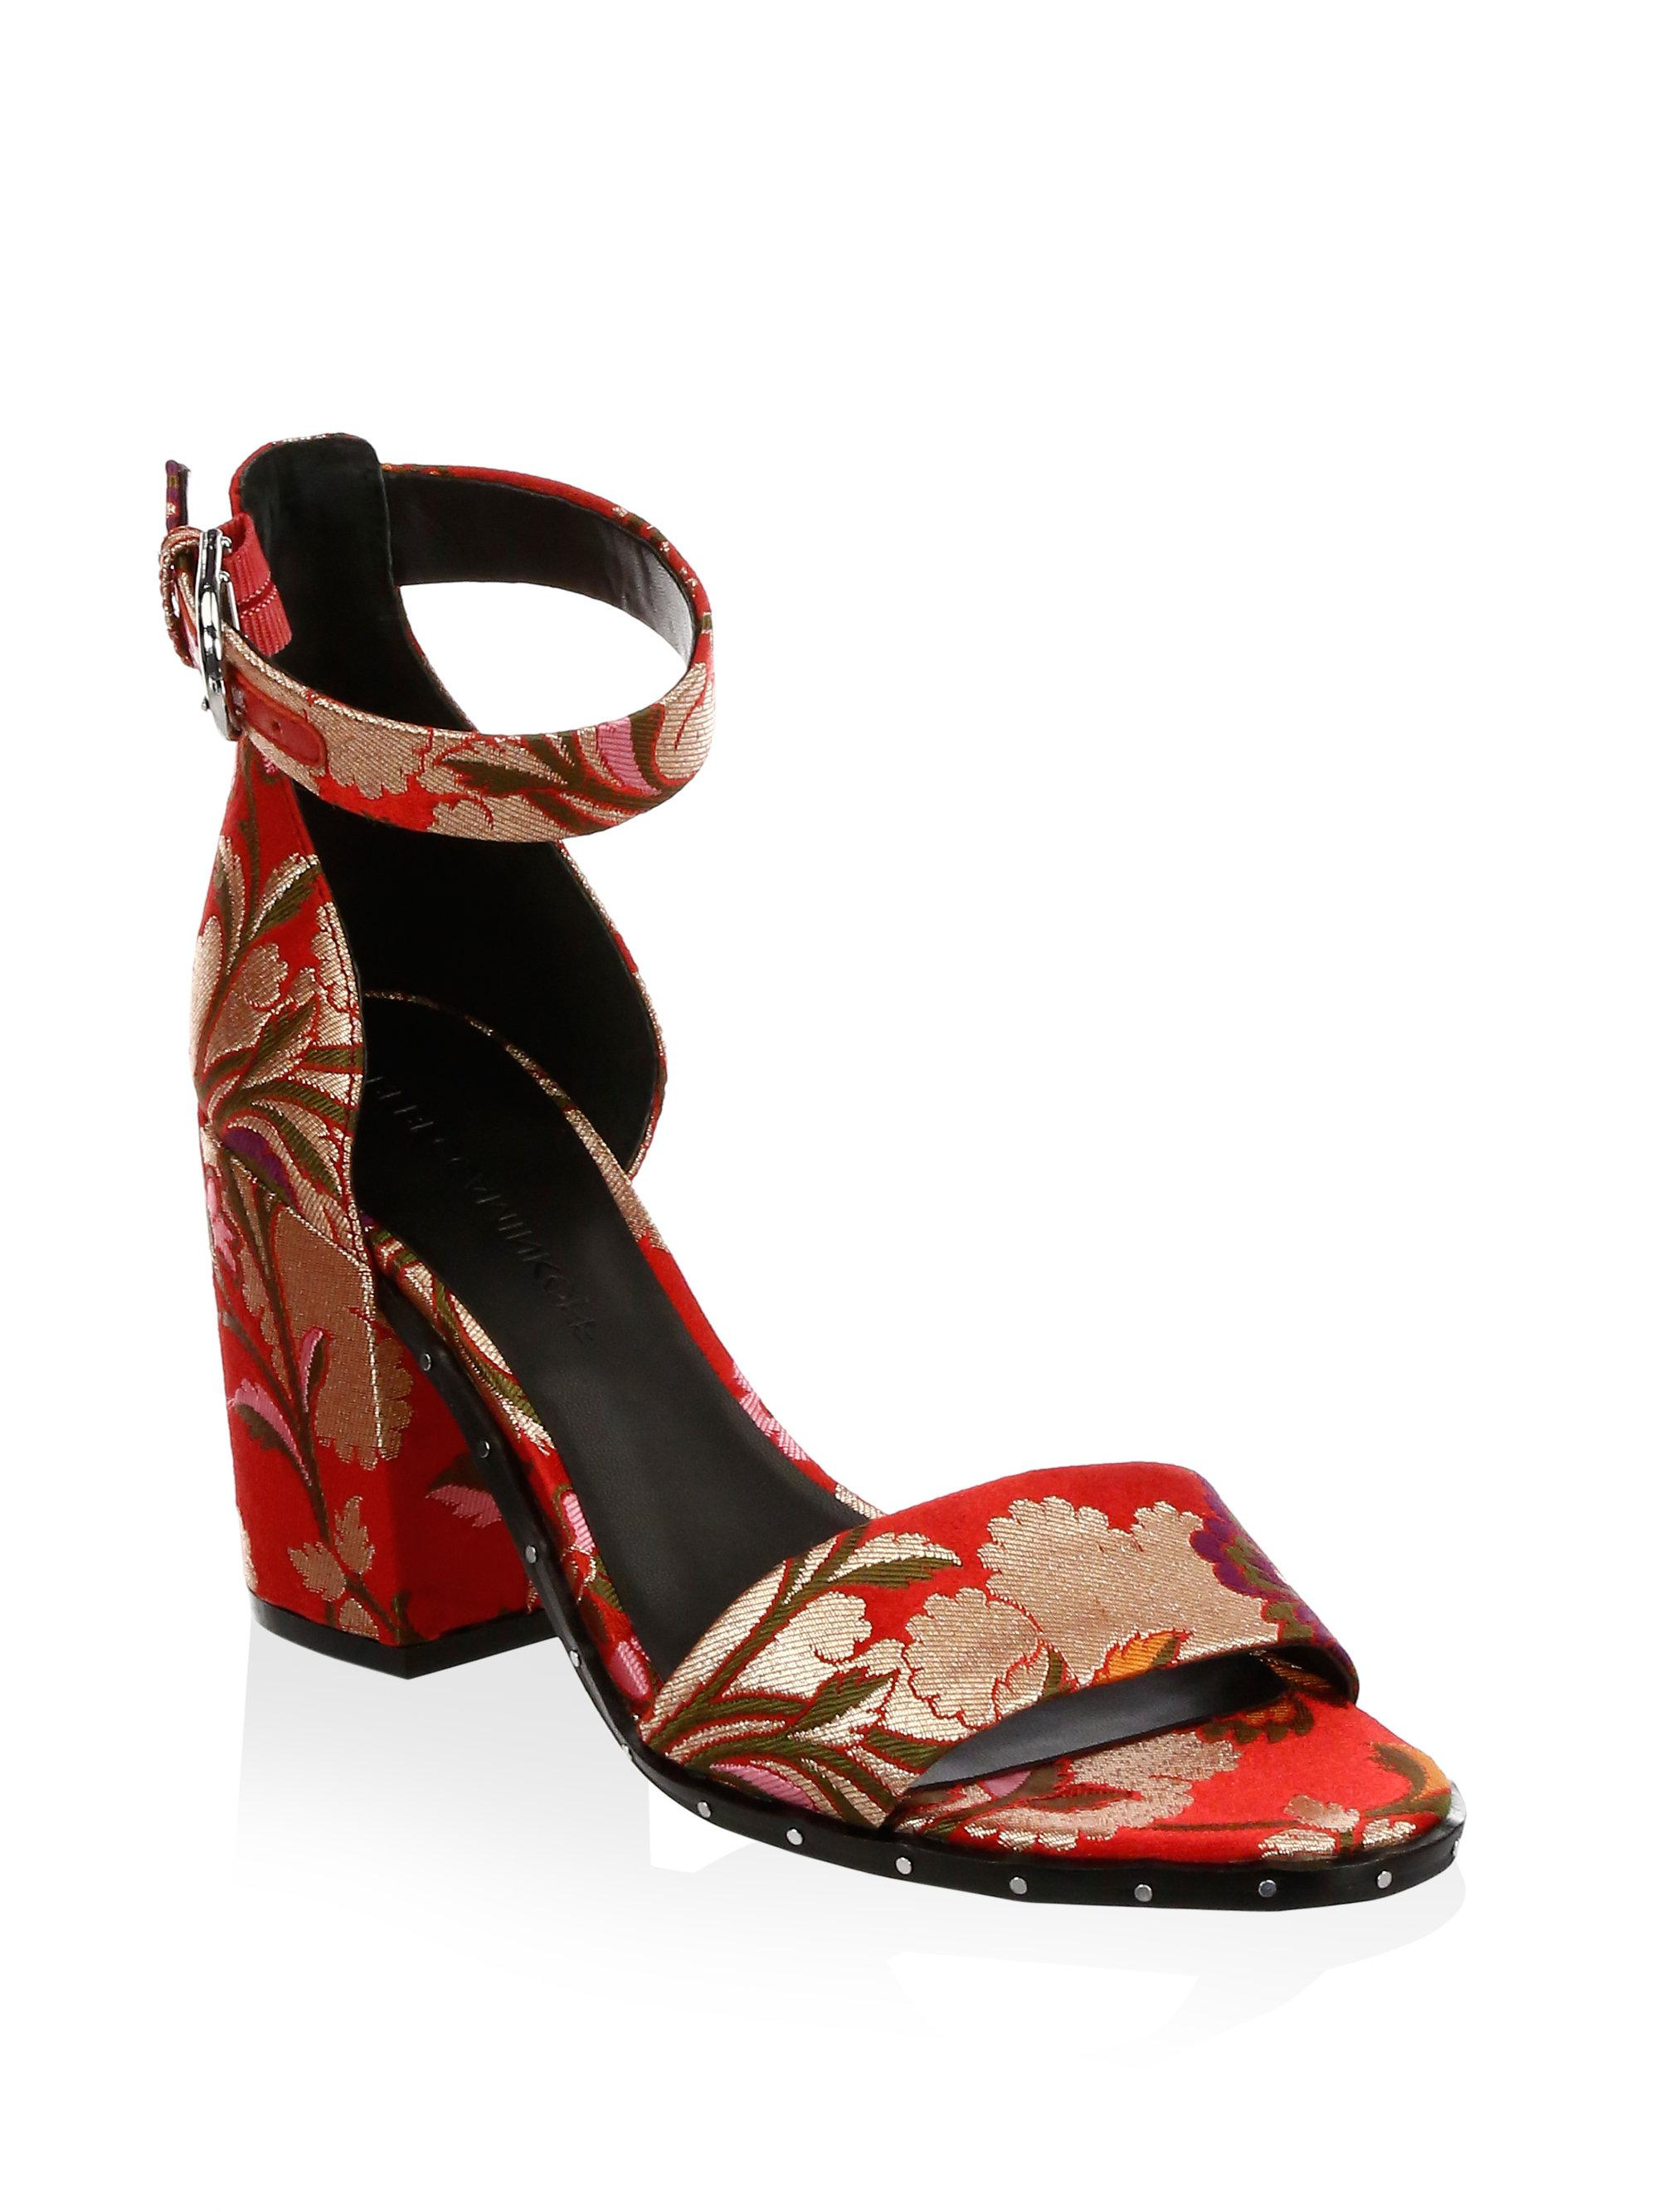 5fb04d3ab5ab0f Lyst - Rebecca Minkoff Celia Ankle-strap Pumps in Red